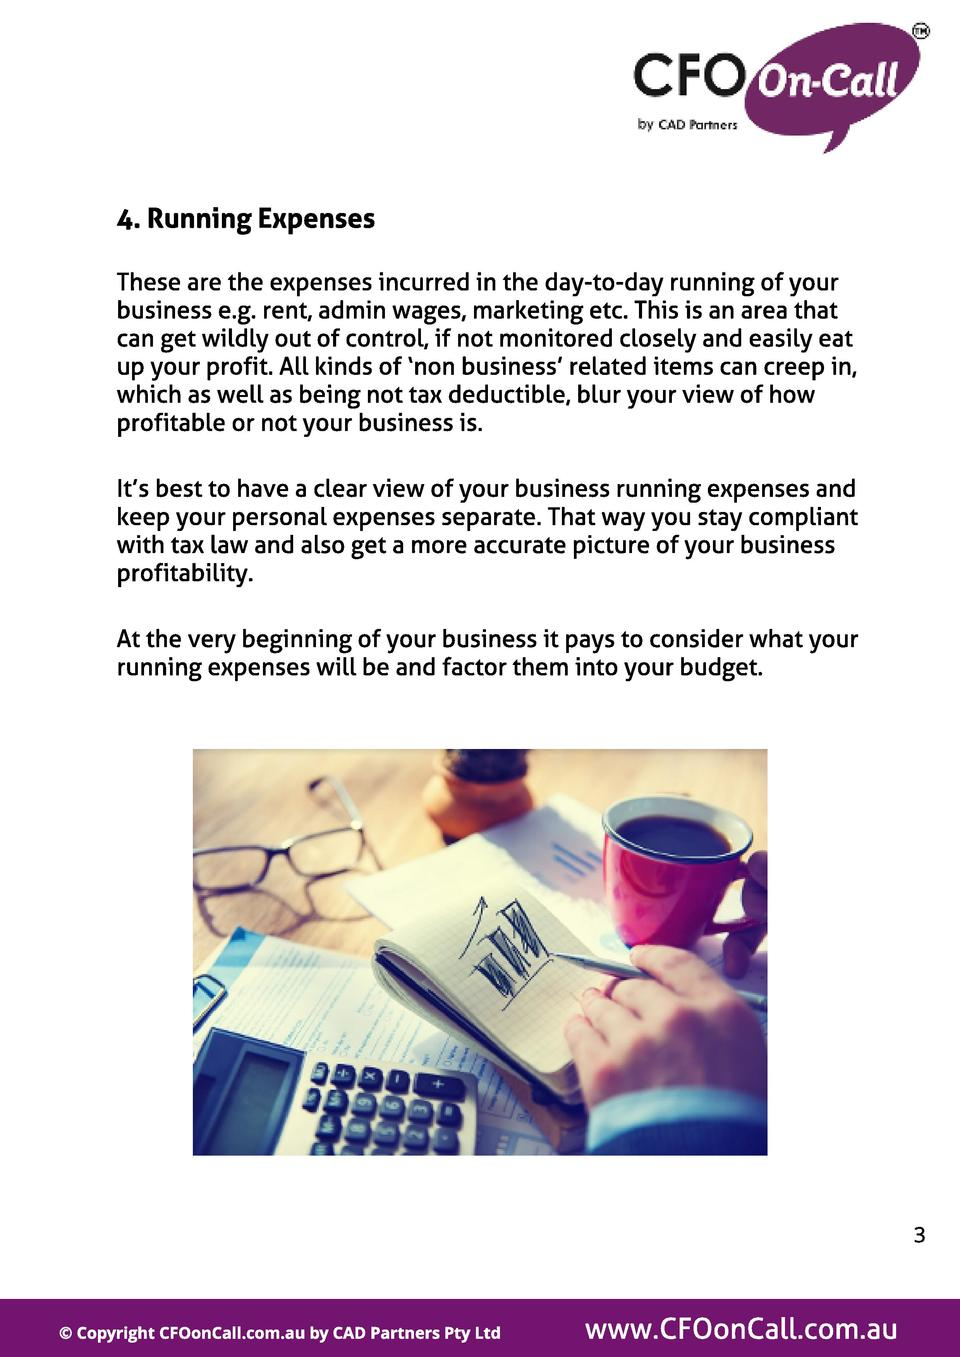 4. Running Expenses These are the expenses incurred in the day-to-day running of your business e.g. rent, admin wages, mar...